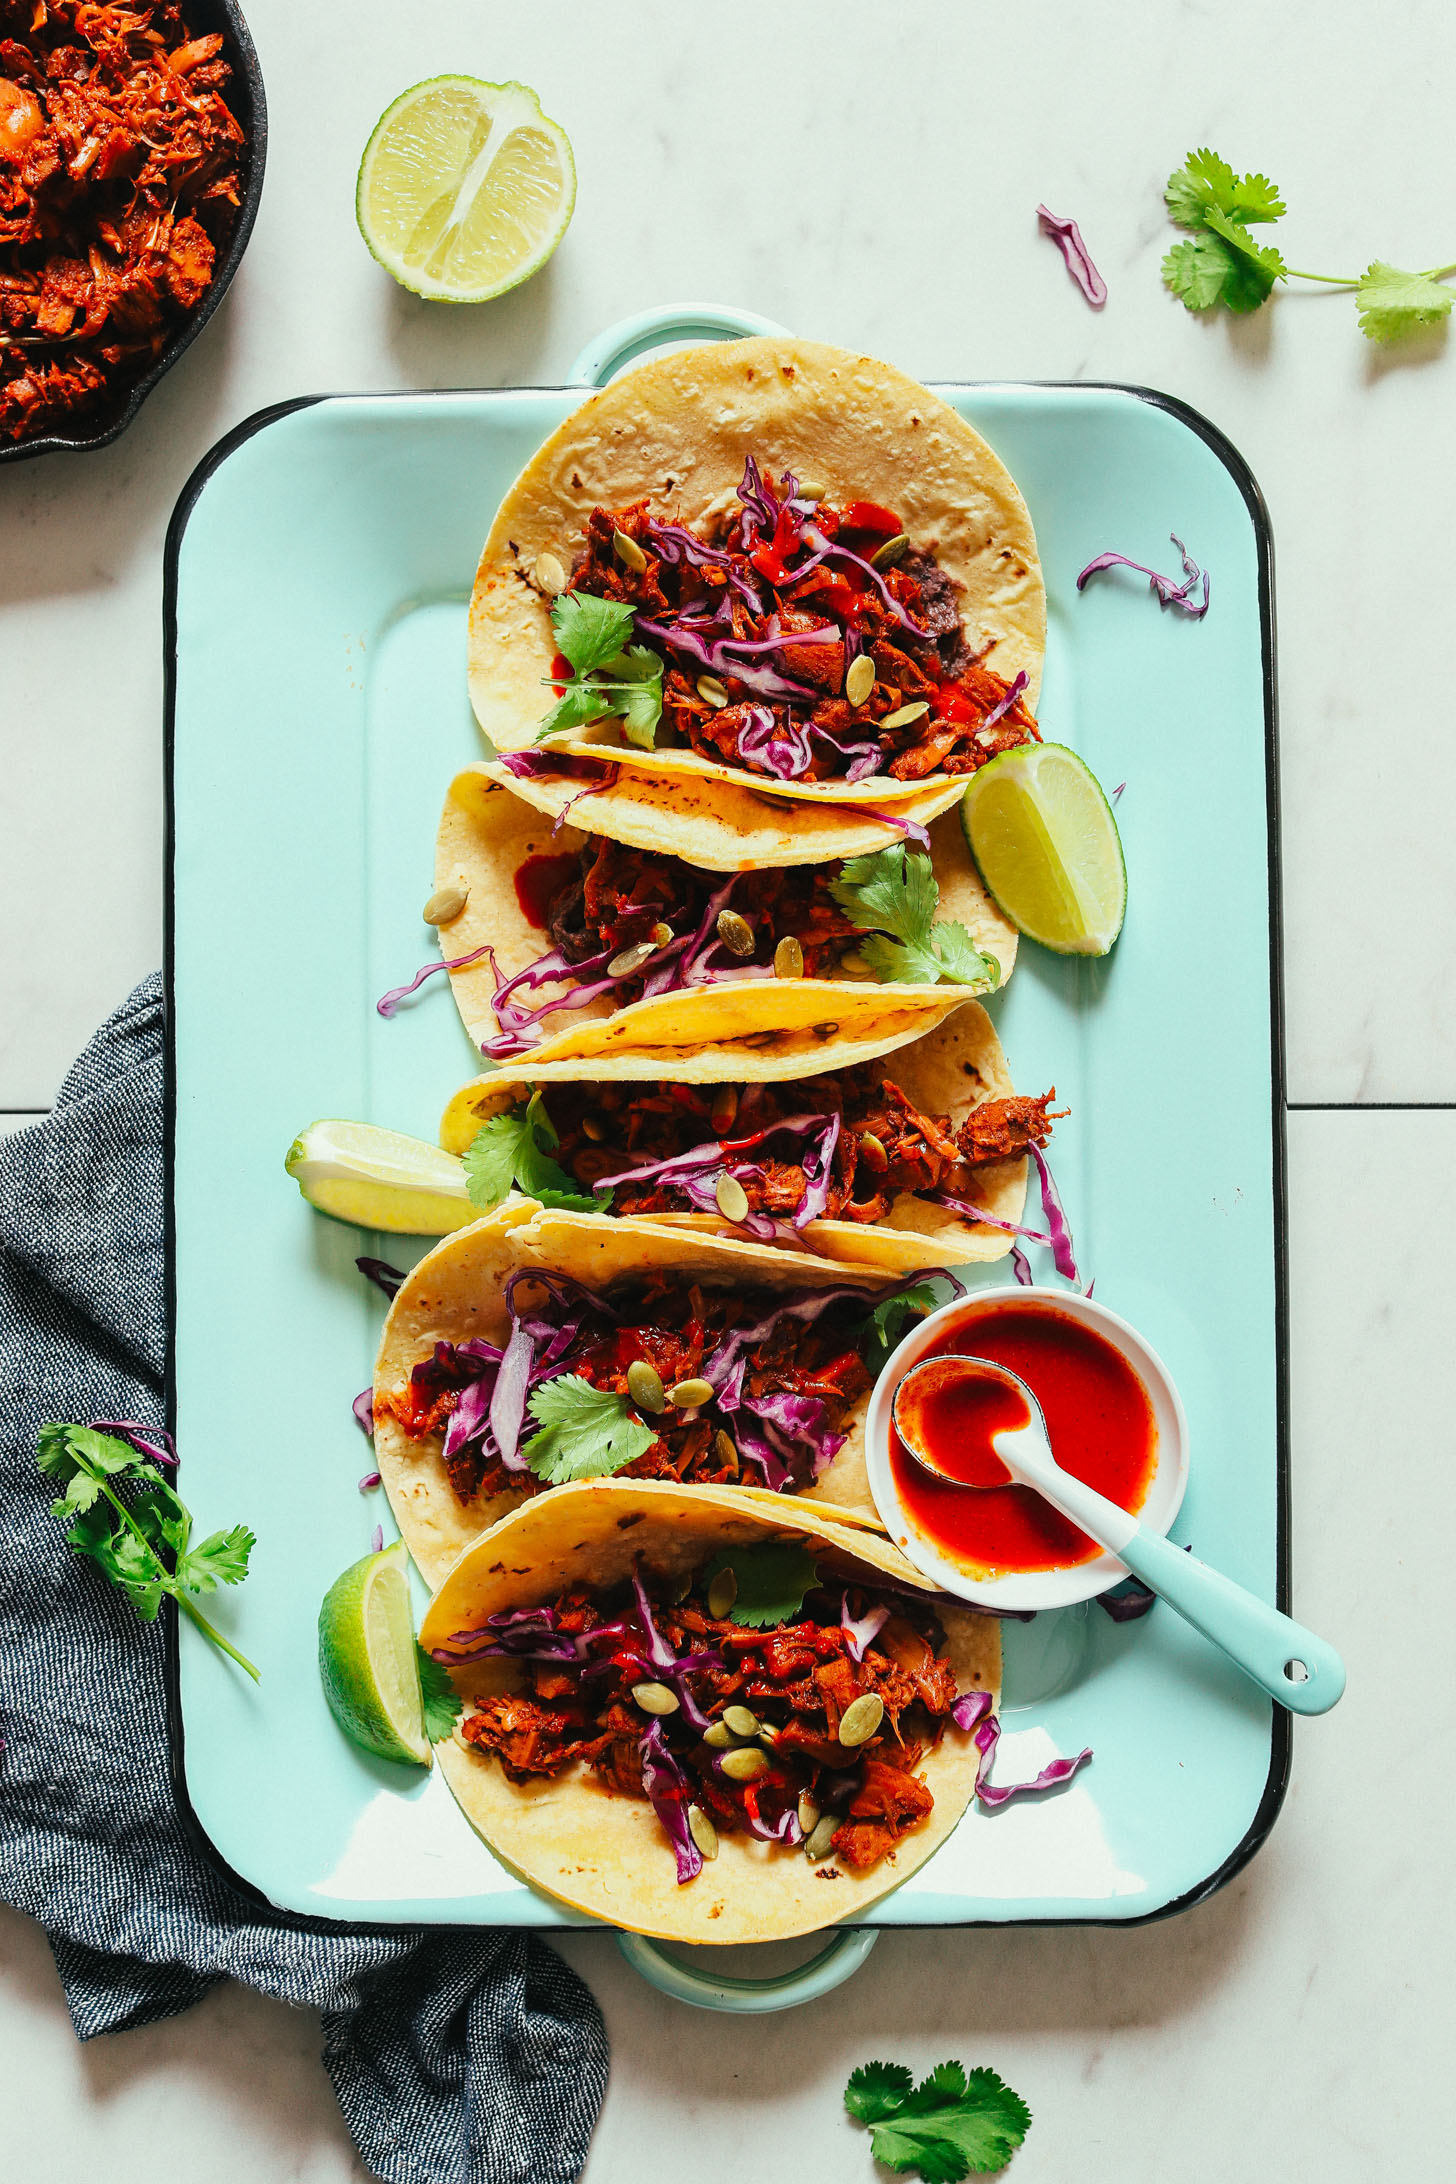 Platter of gluten-free vegan Jackfruit Tacos for an easy weeknight dinner